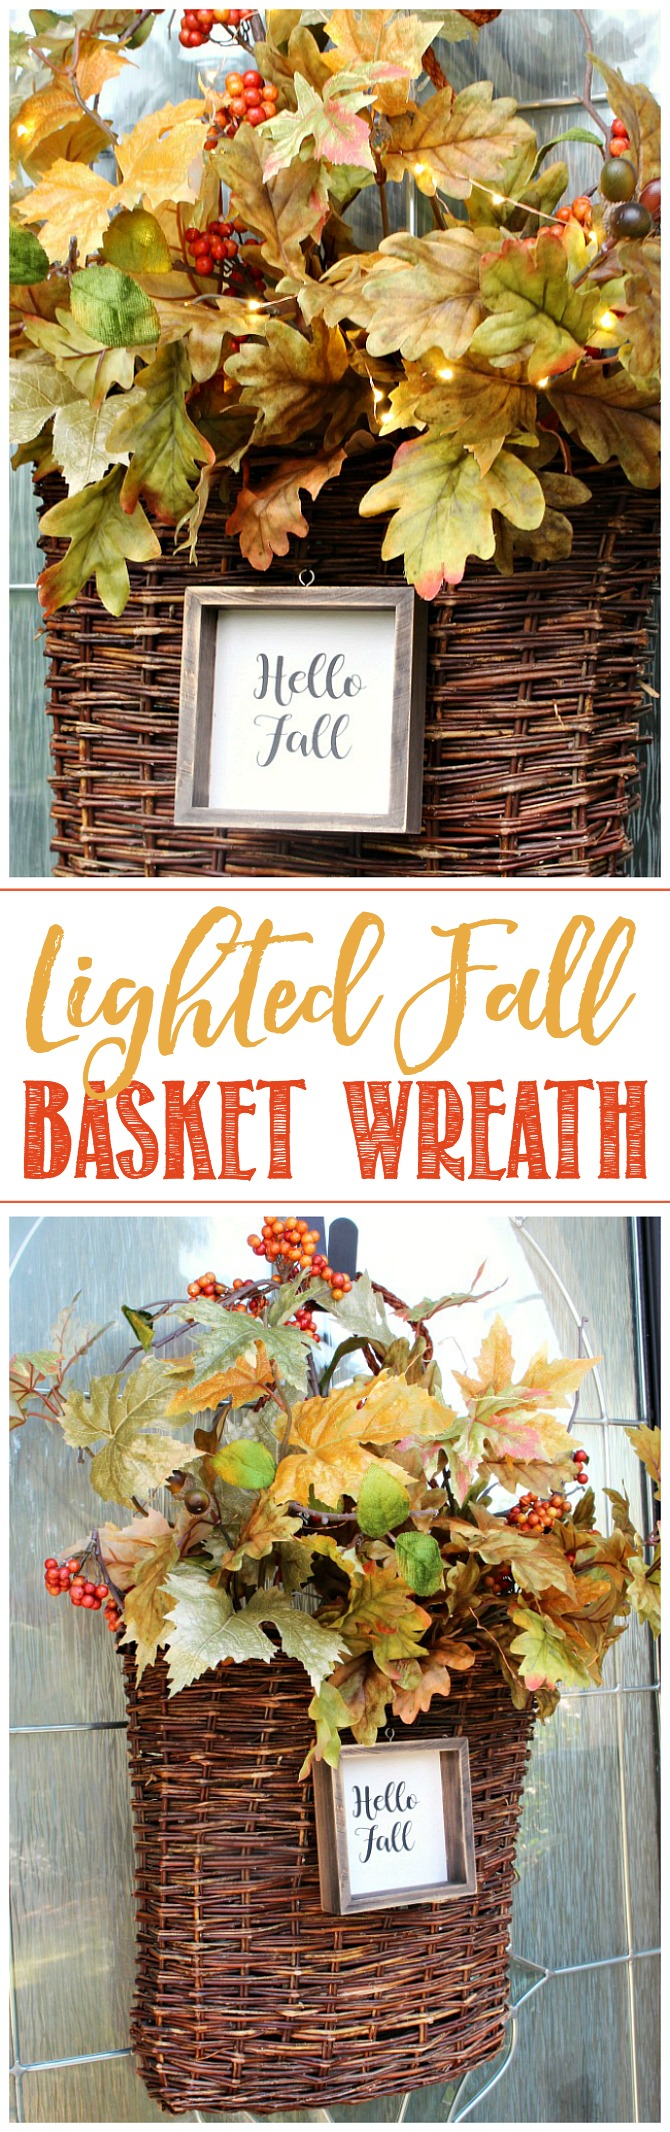 Lighted Fall Basket Wreath. Wicker basket filled with colorful fall leaves and mini lights. Adorned with a Happy Fall wooden sign.